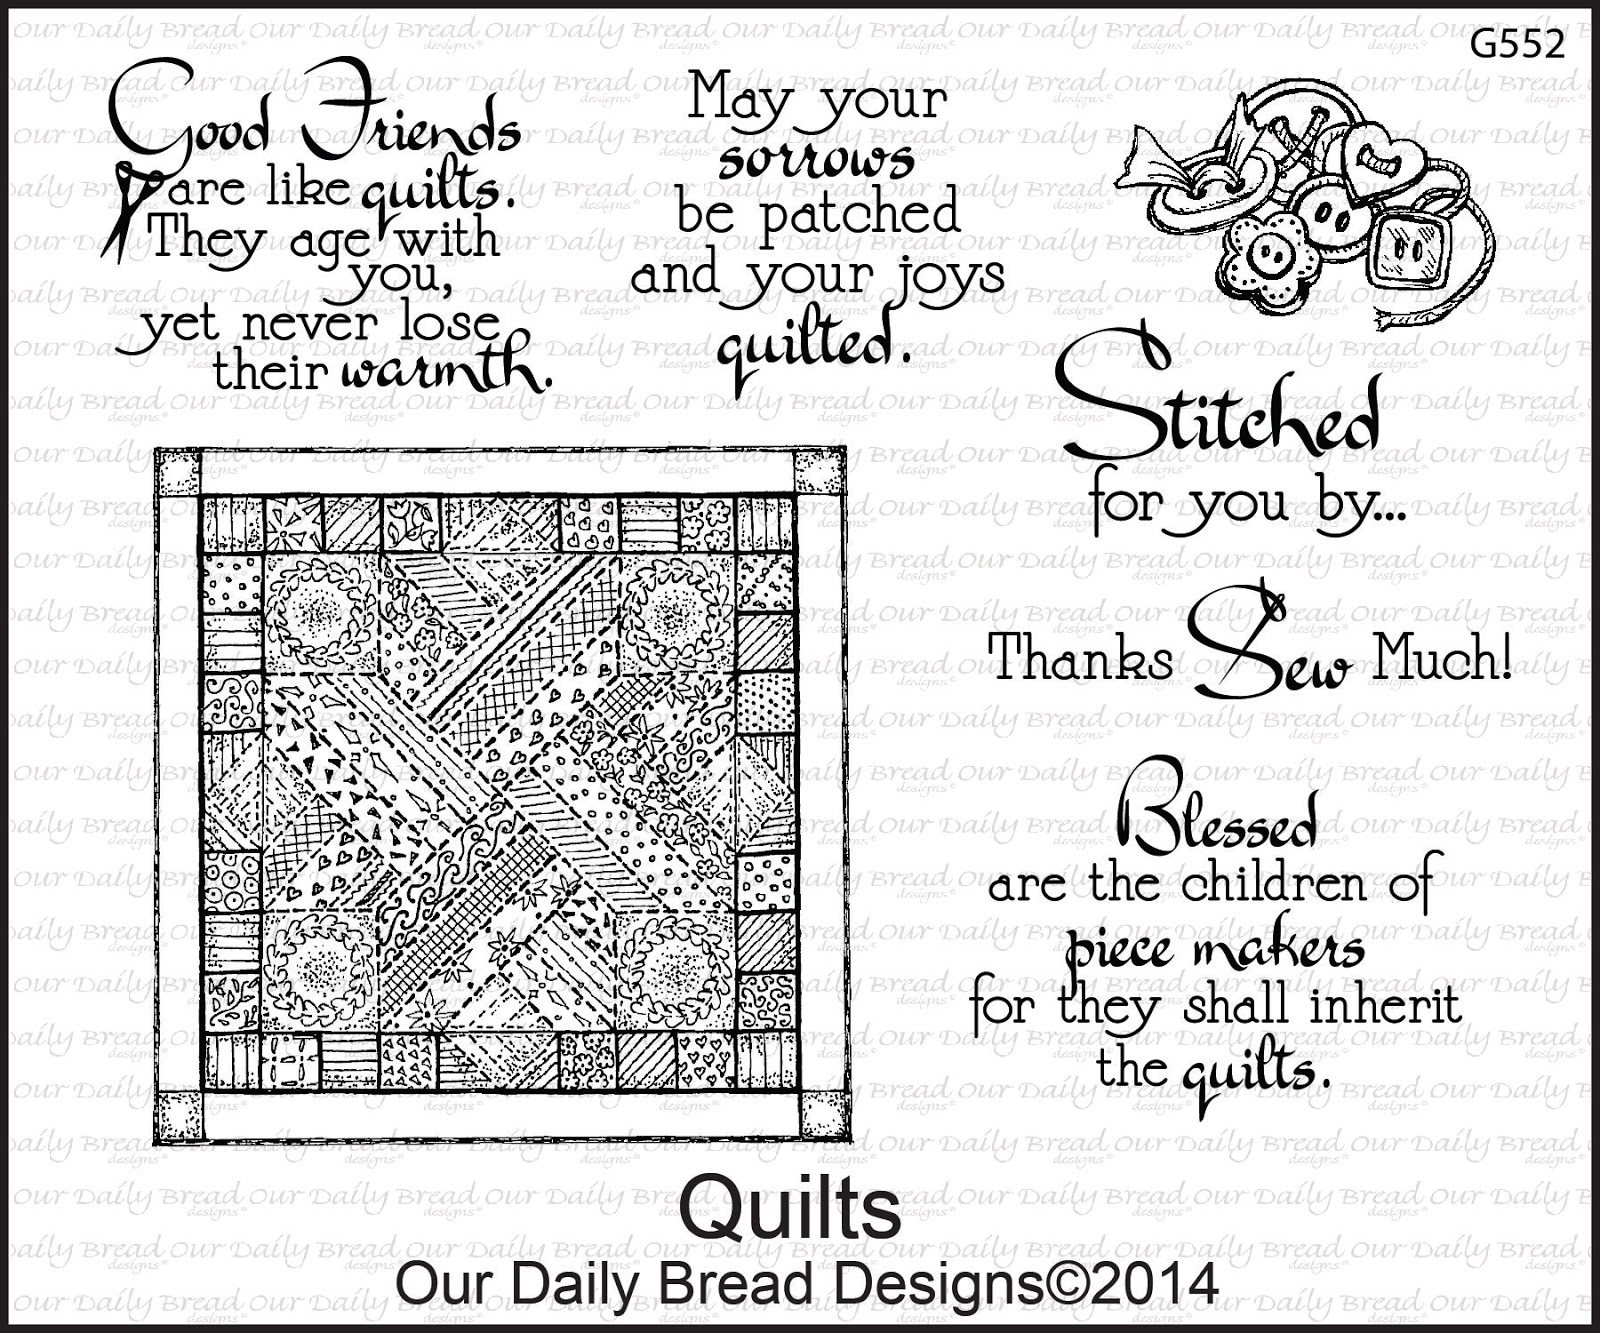 Stamps - Our Daily Bread Designs Quilts